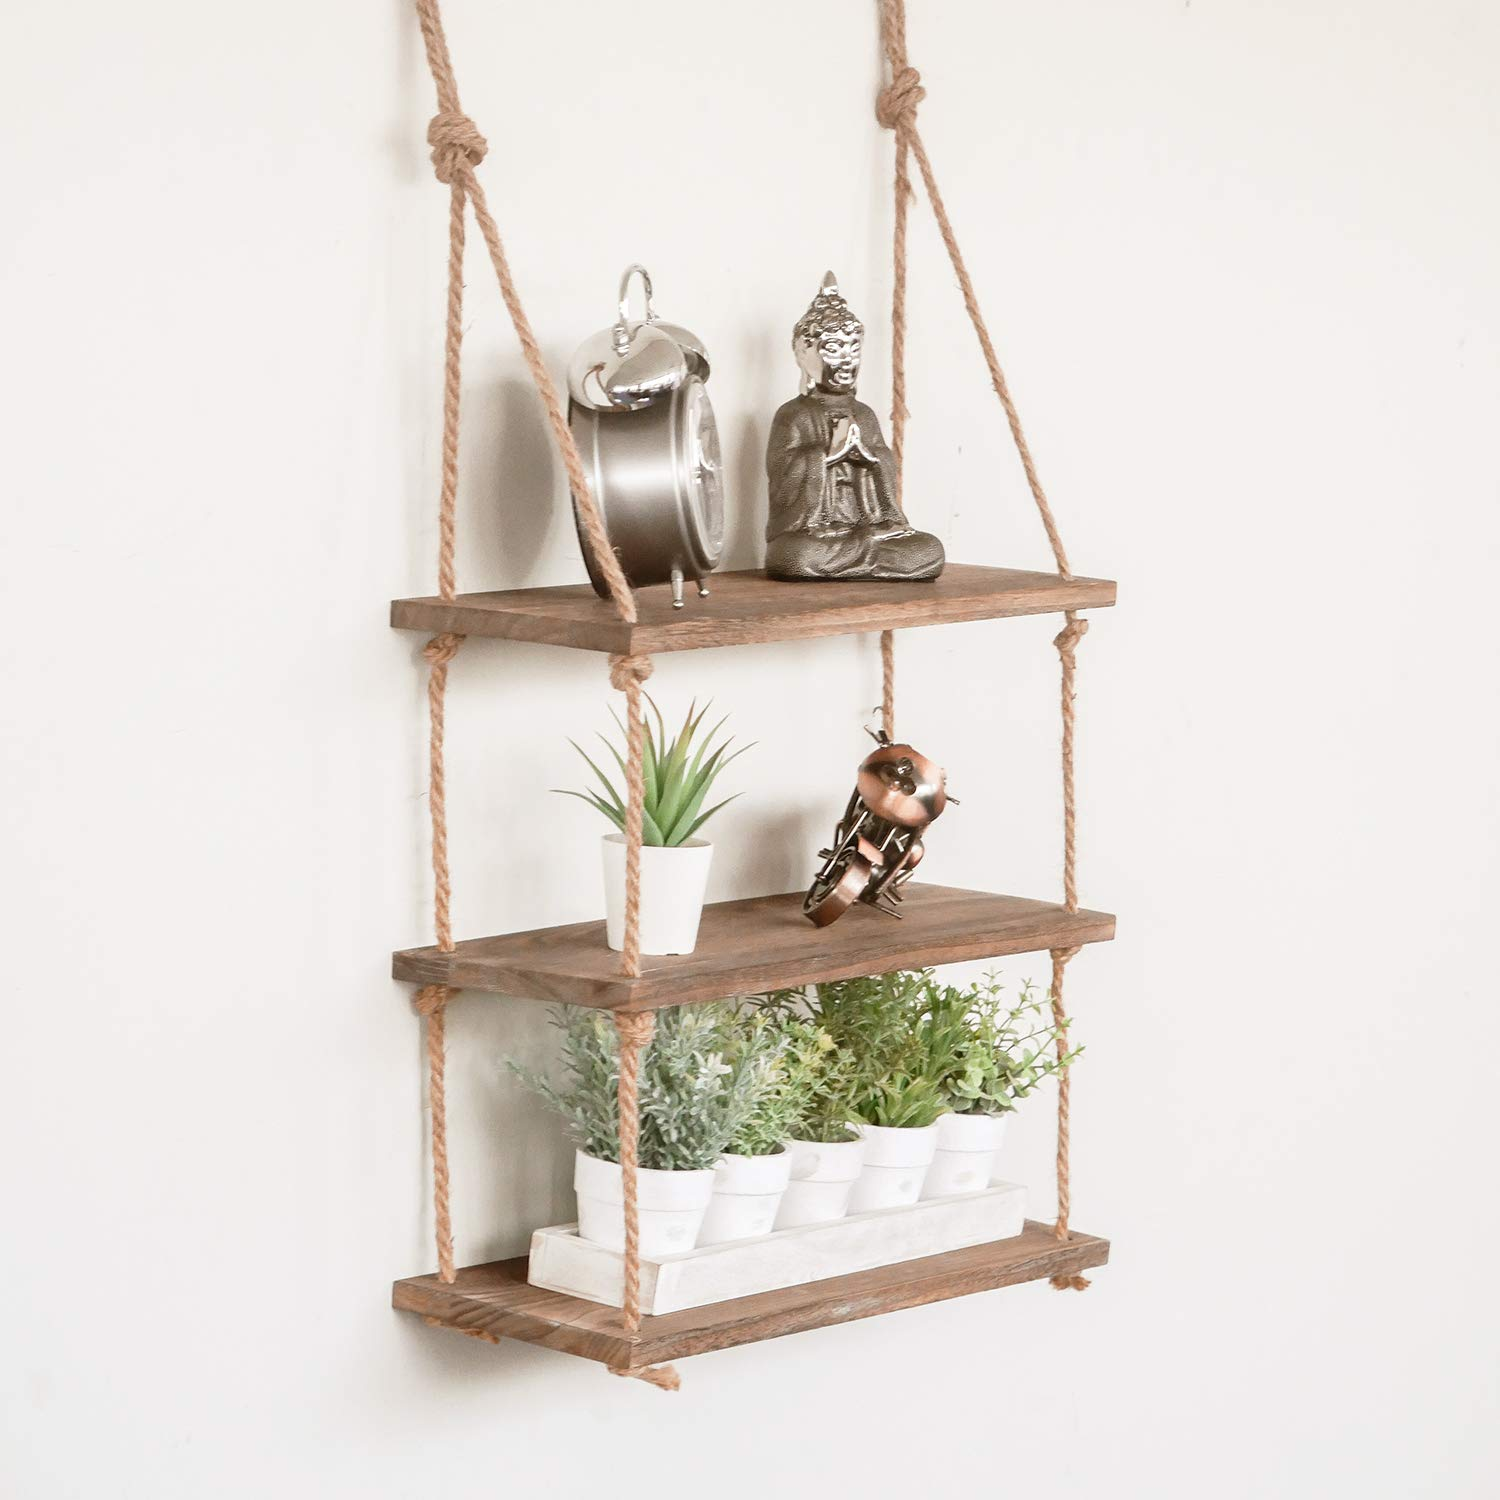 homezone tier vintage shabby chic shelving with rope shelf rustic home bargains floating shelves multiple tiered wall hanging storage organisation can you hang command strips